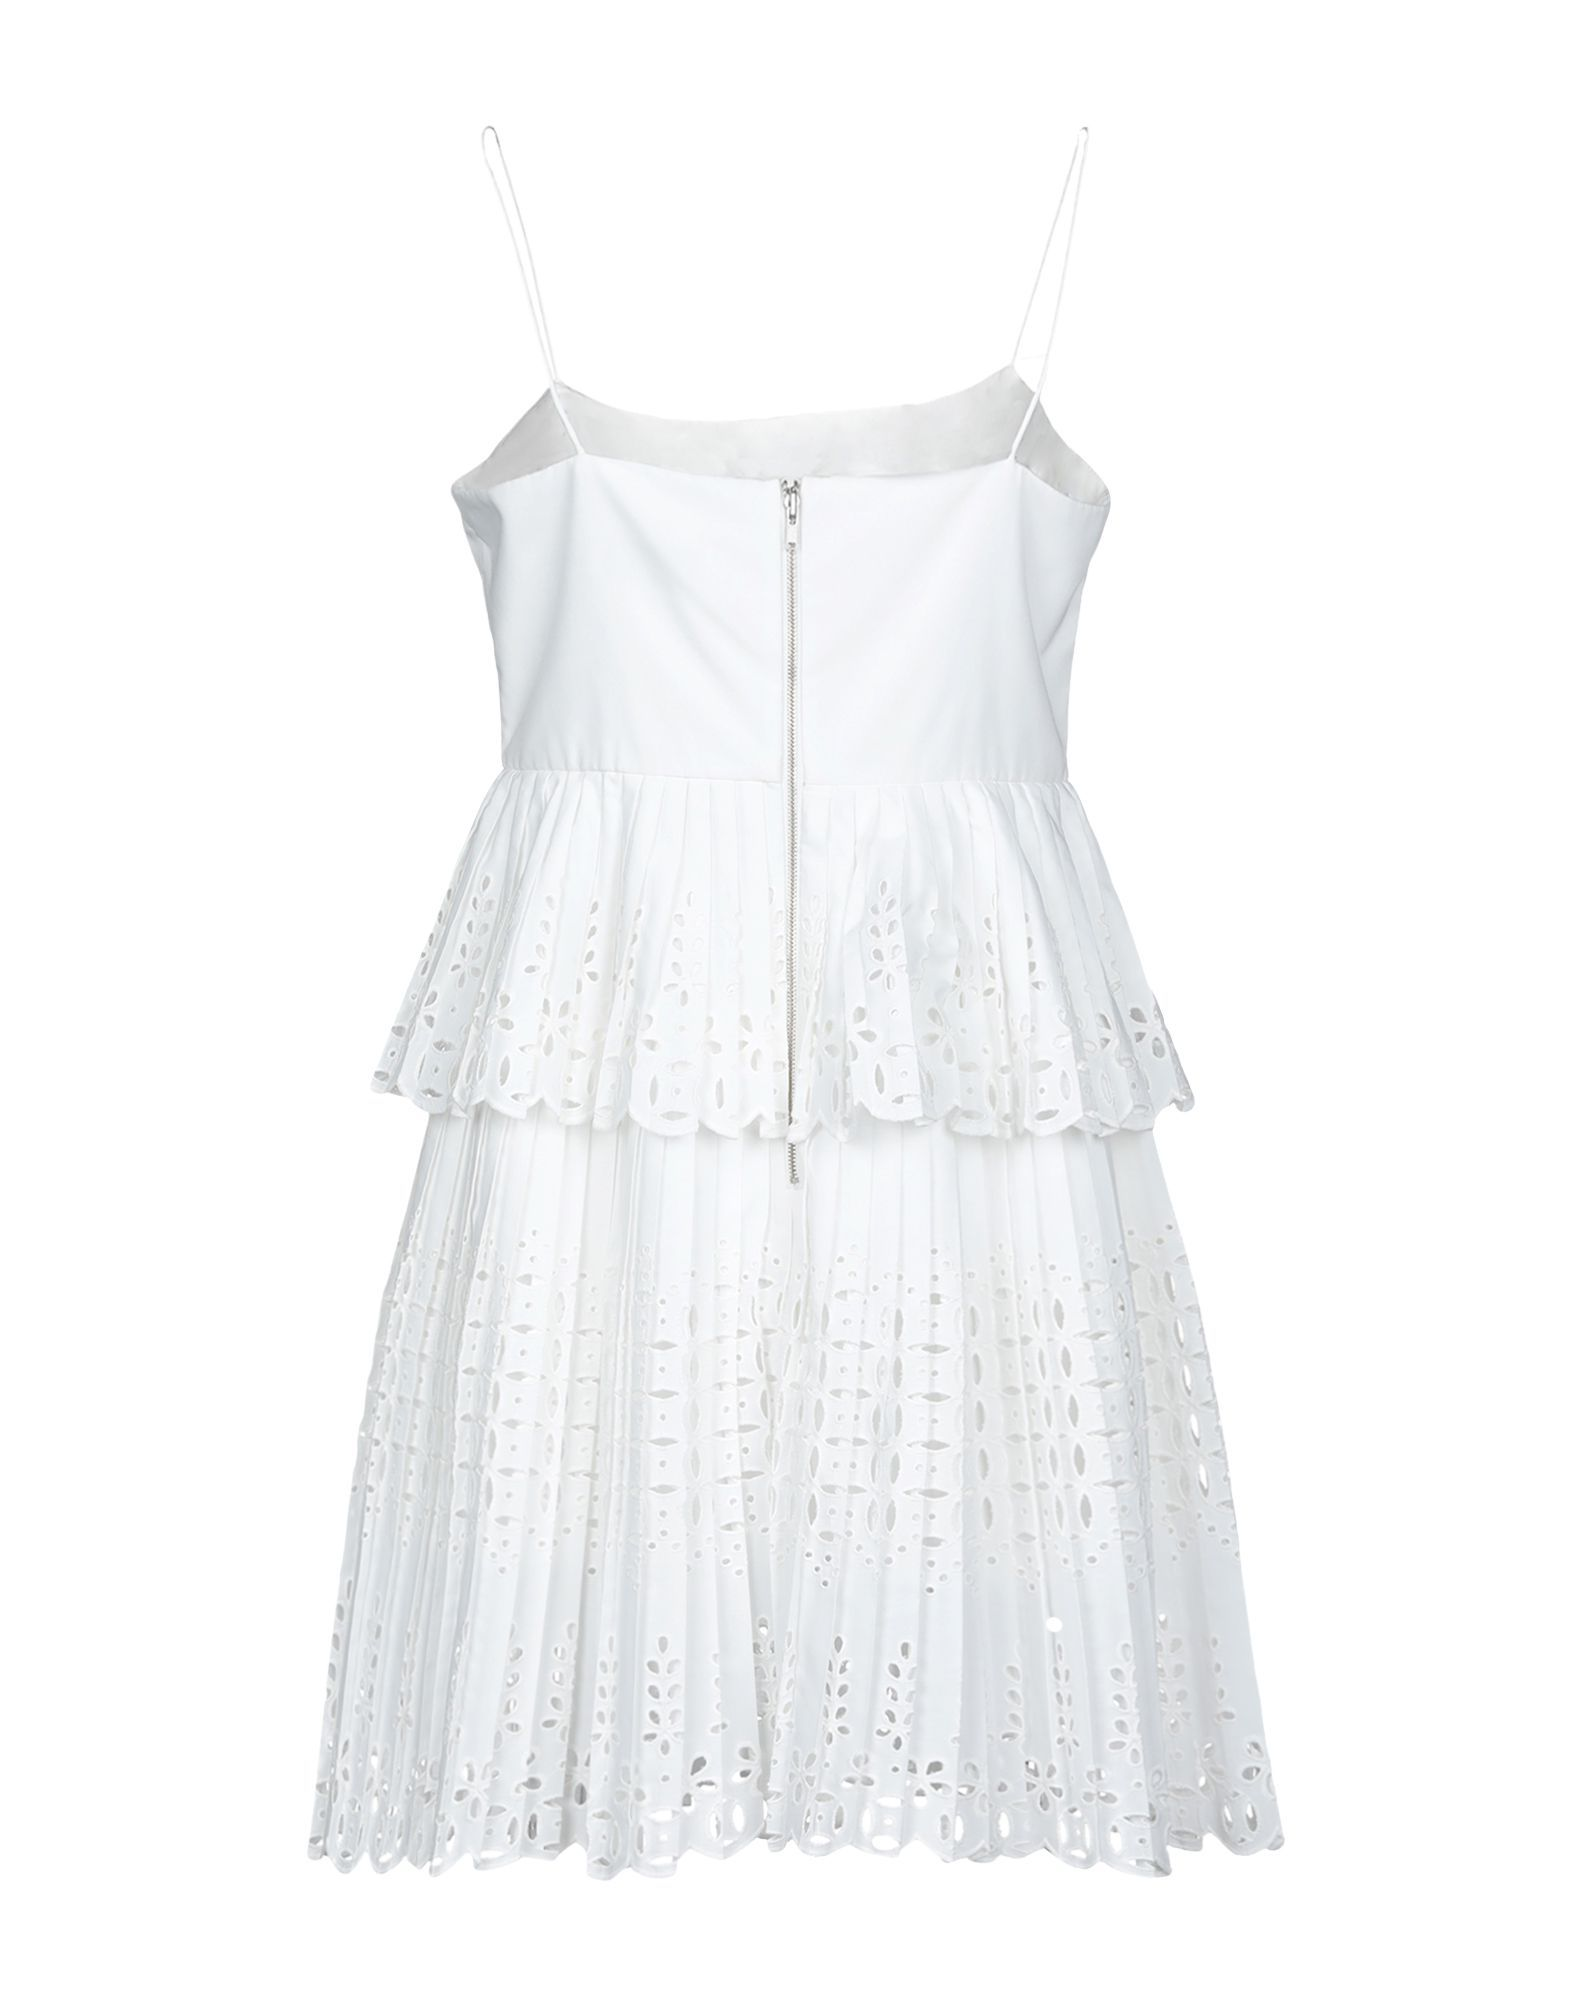 Self-Portrait White Cotton Lace Dress